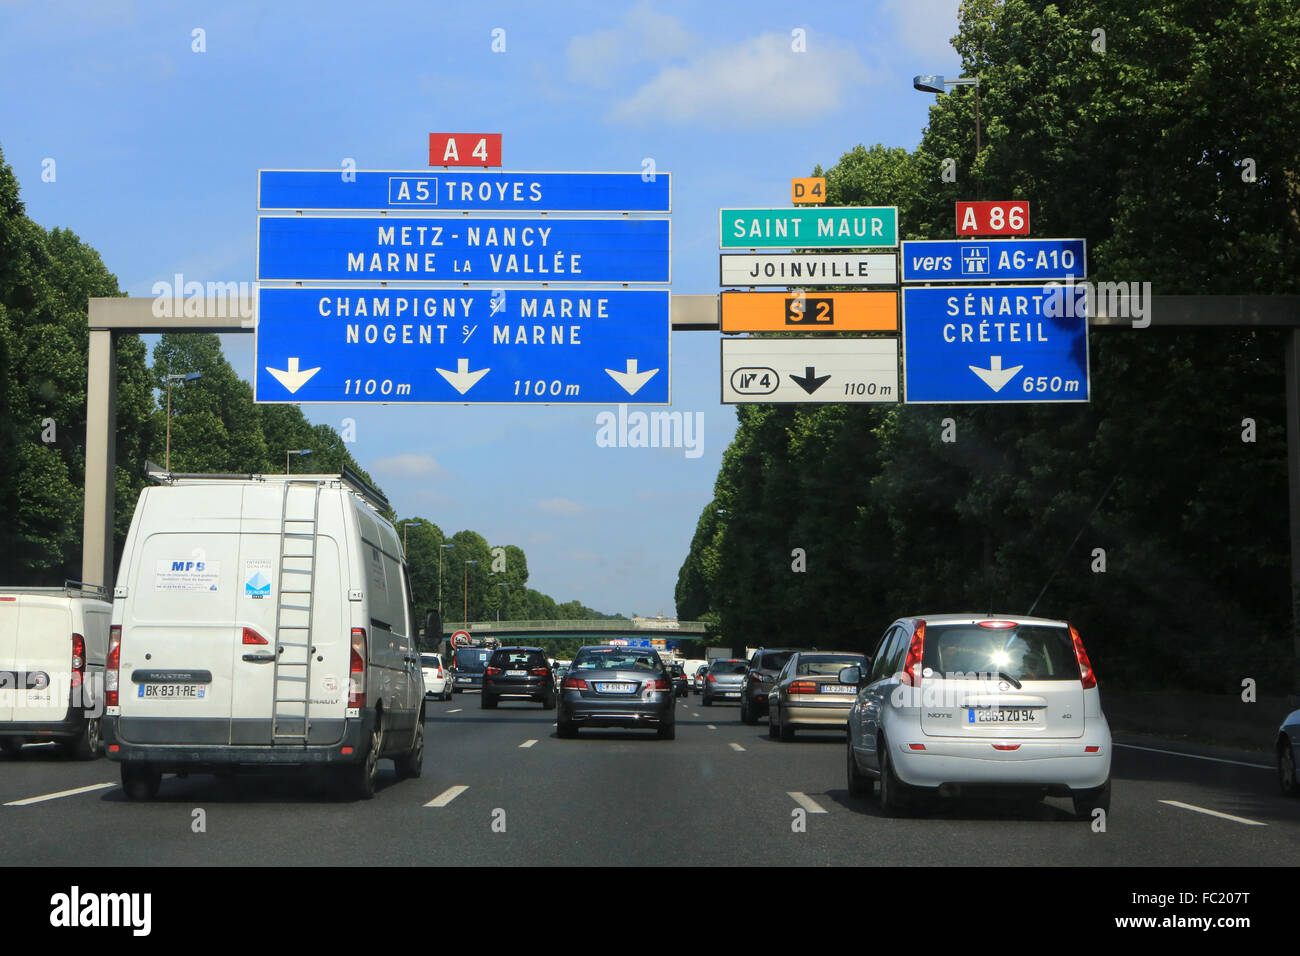 A4 - A86. Highways. - Stock Image